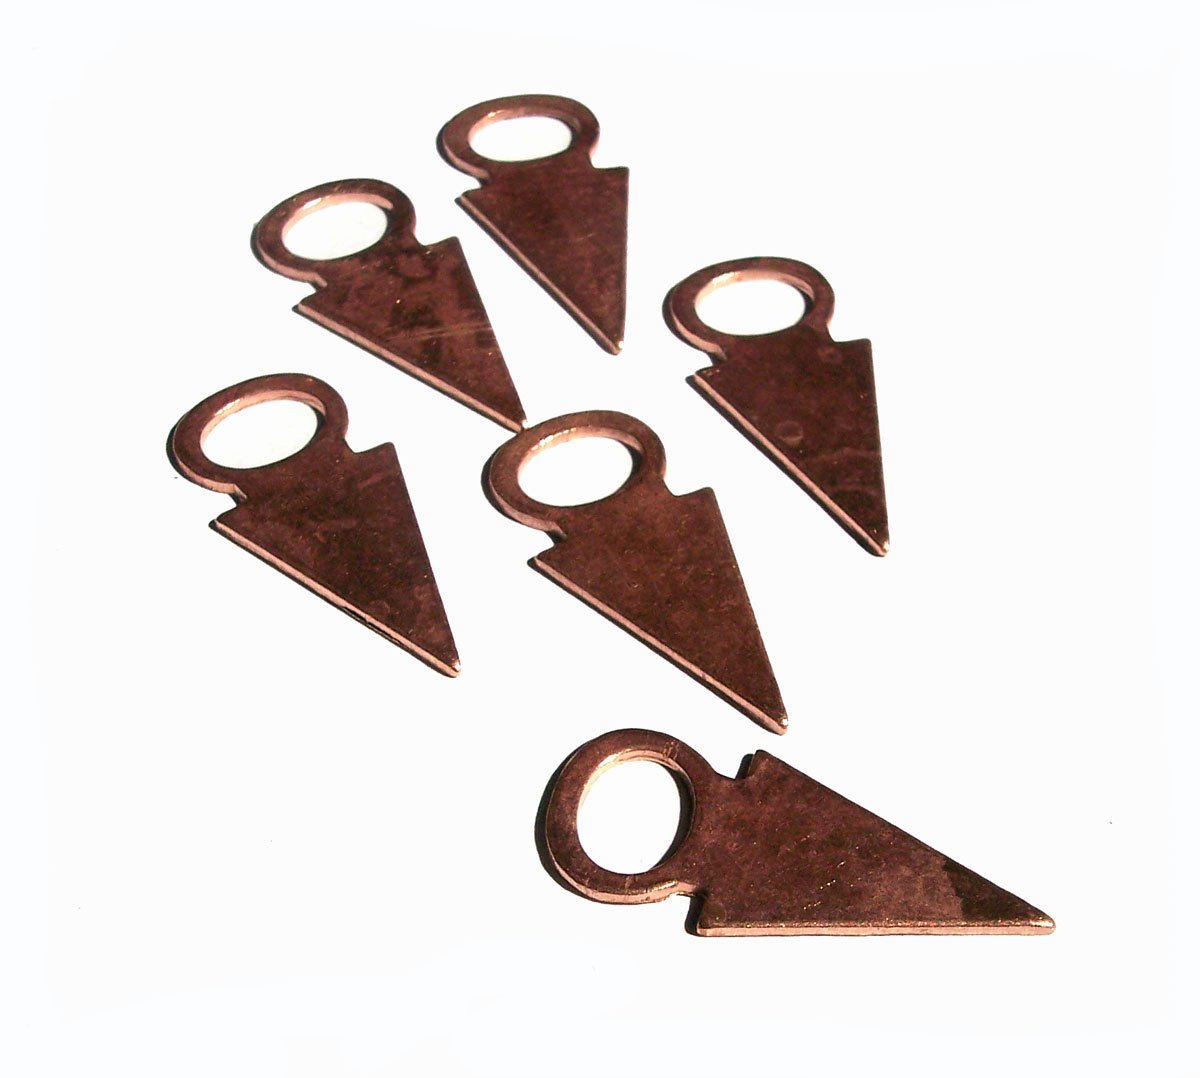 Tanfolk 30mm x 13mm 20g Figure for Enameling Stamping Texturing - 6 pieces